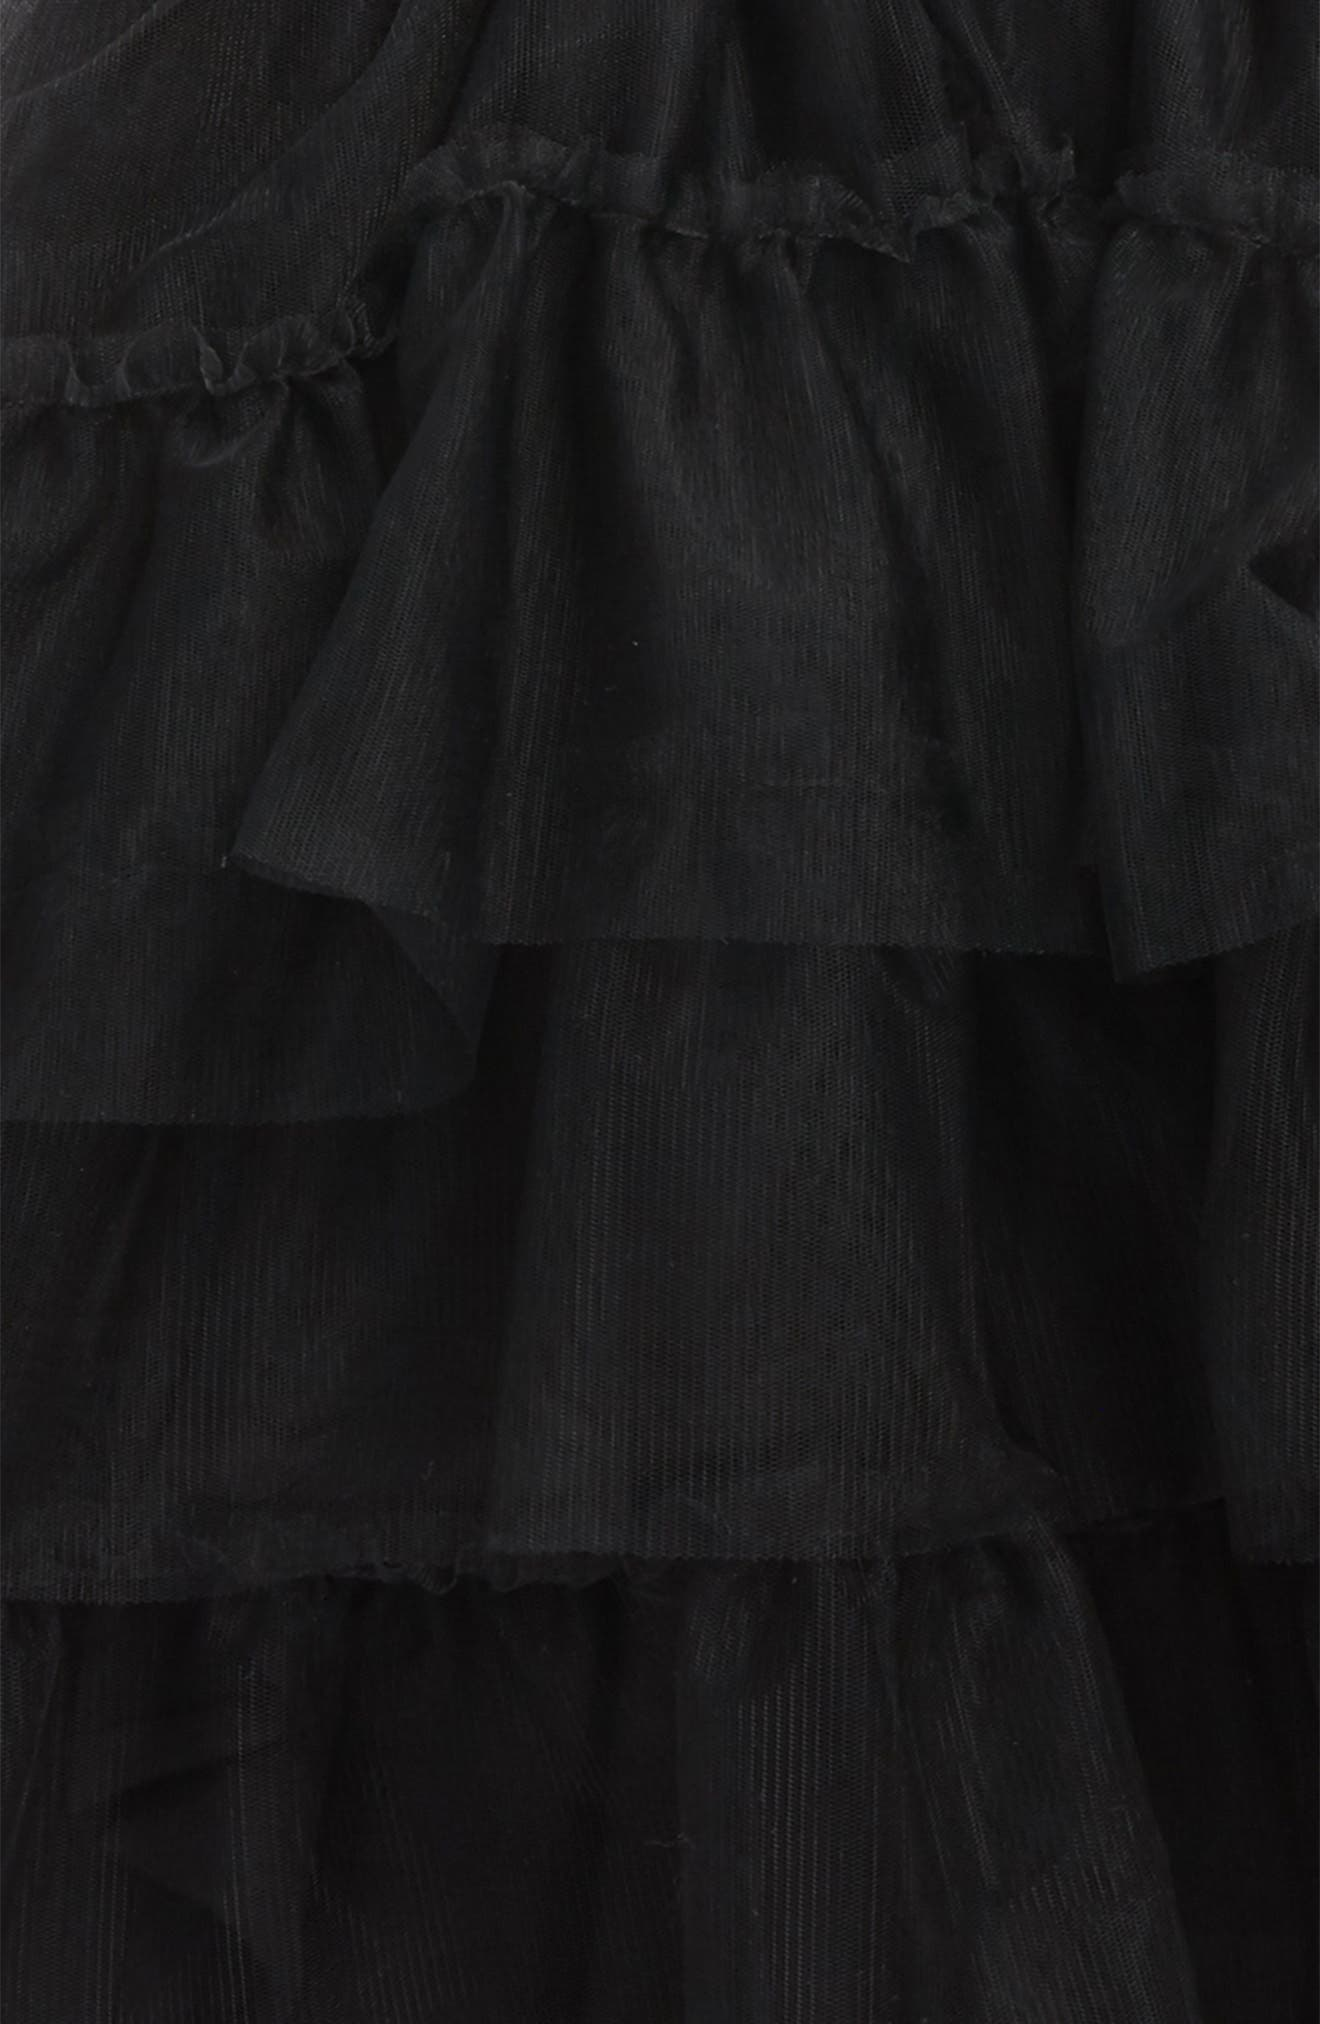 Tulle Skirt,                             Alternate thumbnail 2, color,                             Dyed Black